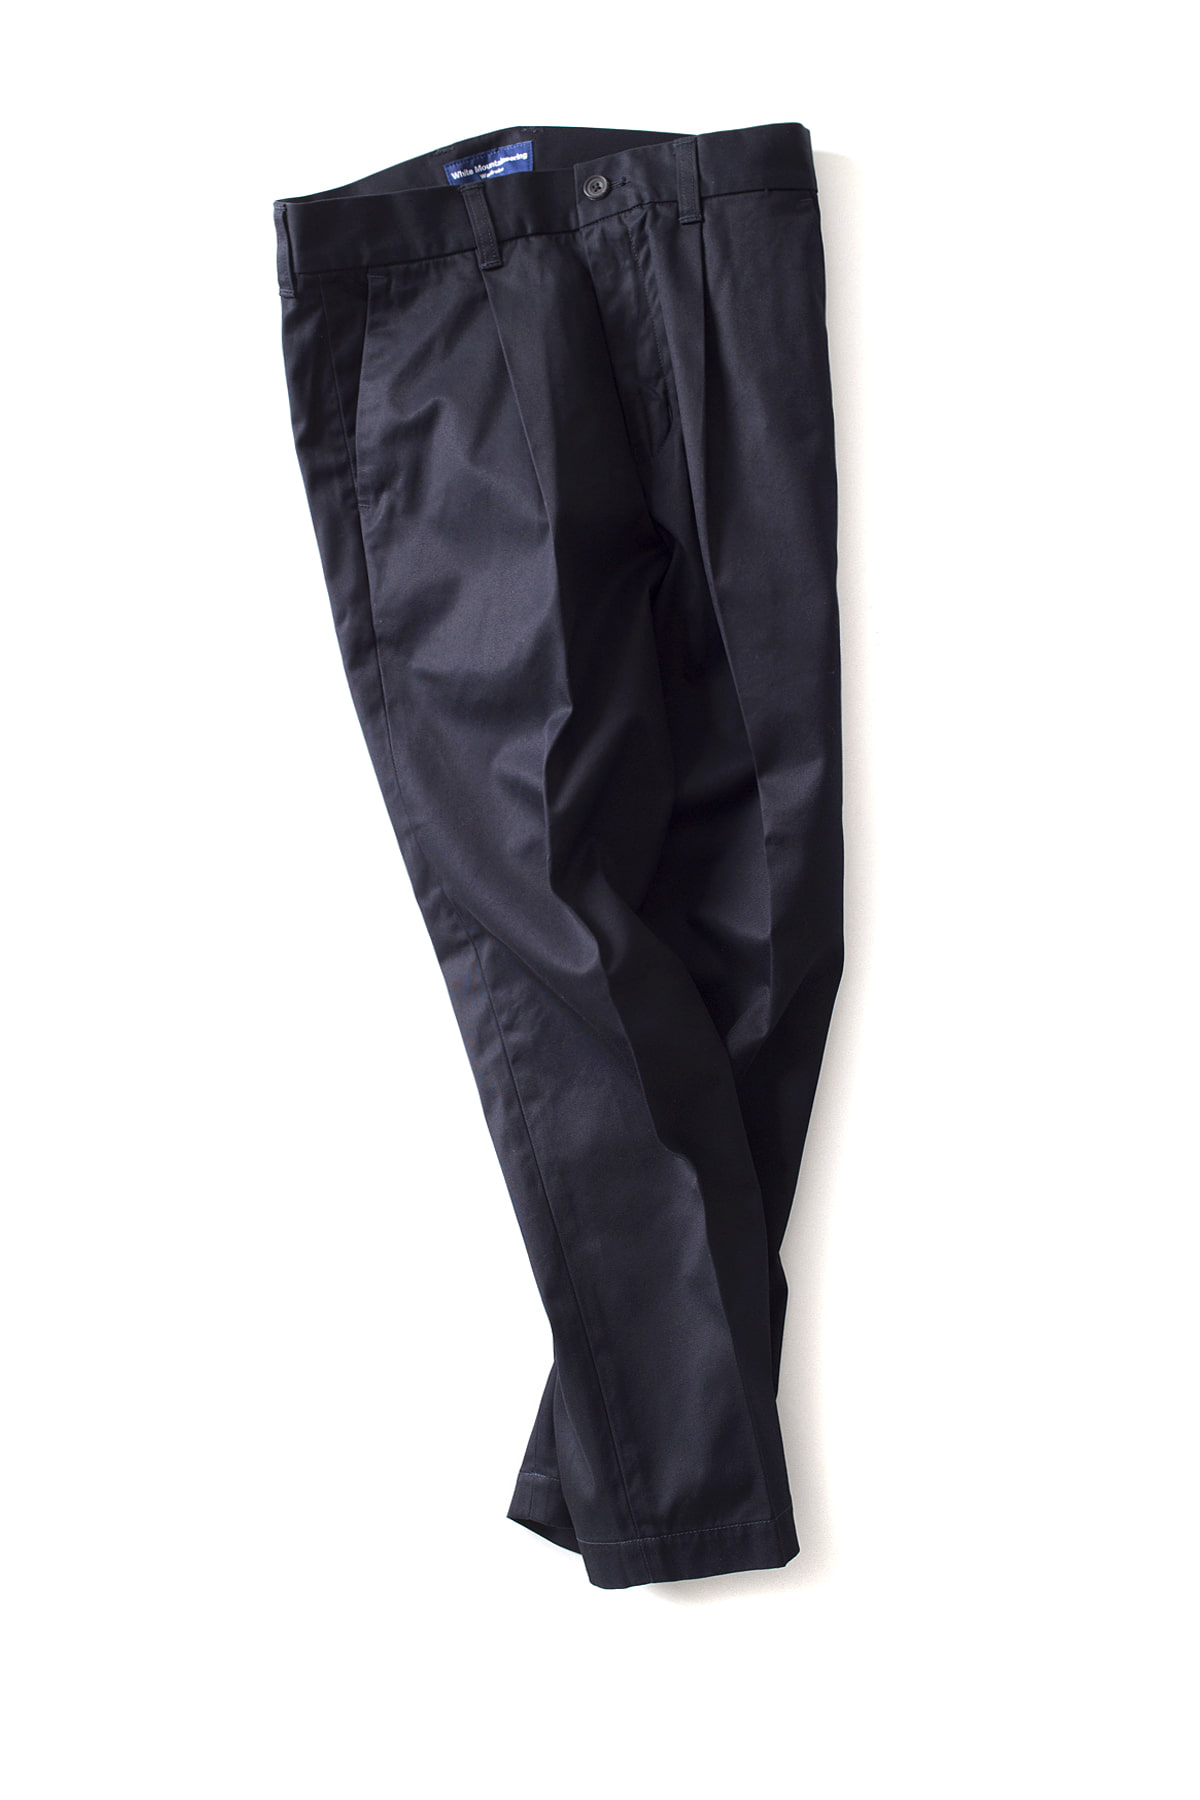 WHITE MOUNTAINEERING : Tapered Ankle Wide Pants (Navy)